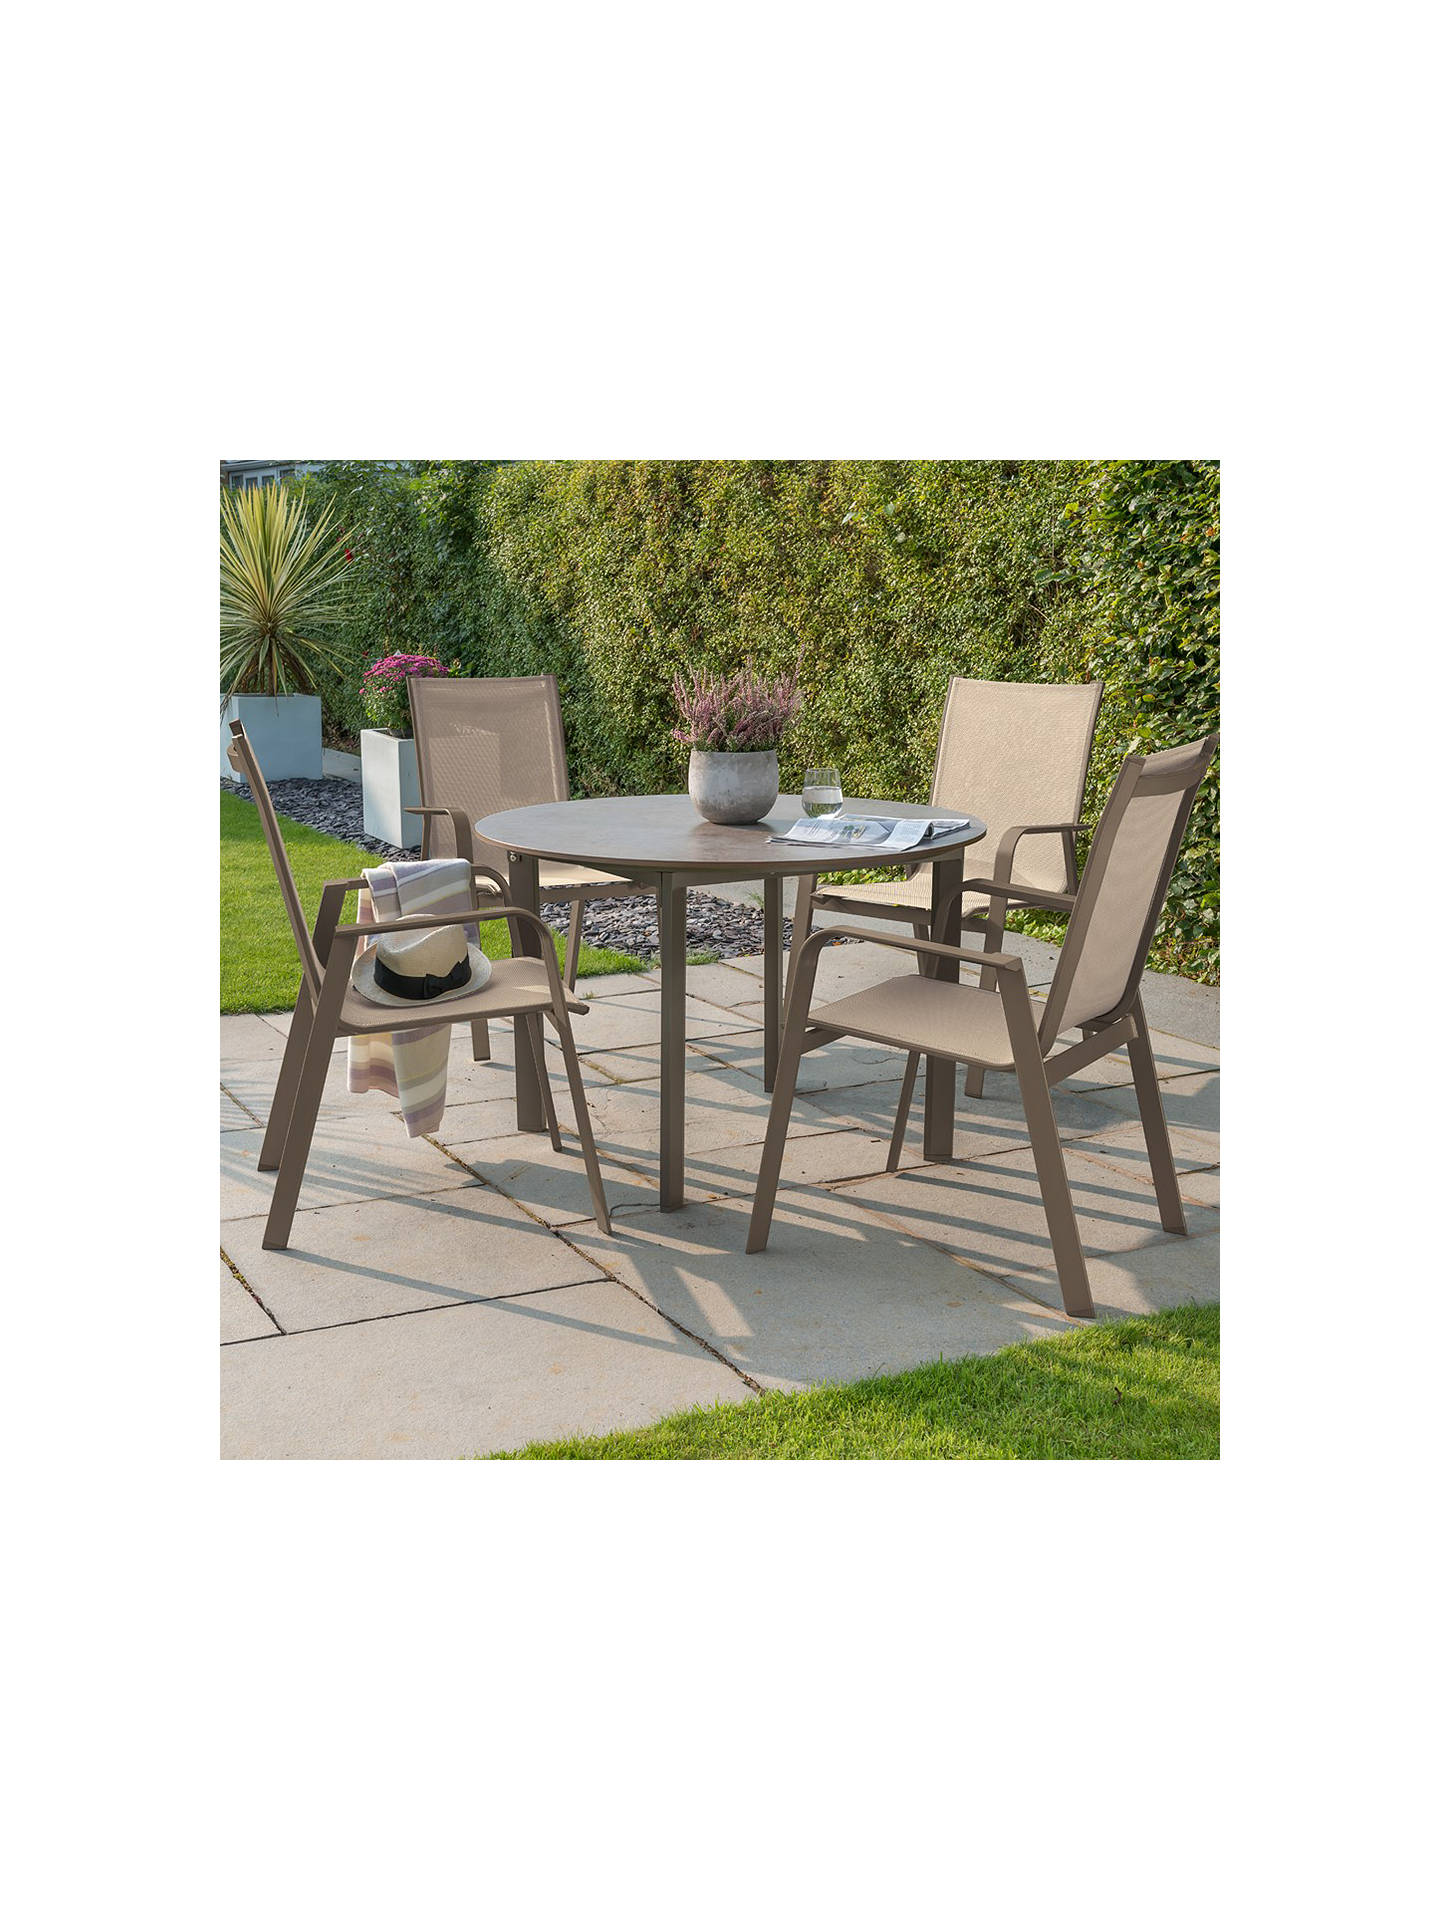 Kettler Milano 4 Seater Garden Table And Chairs Set Taupe